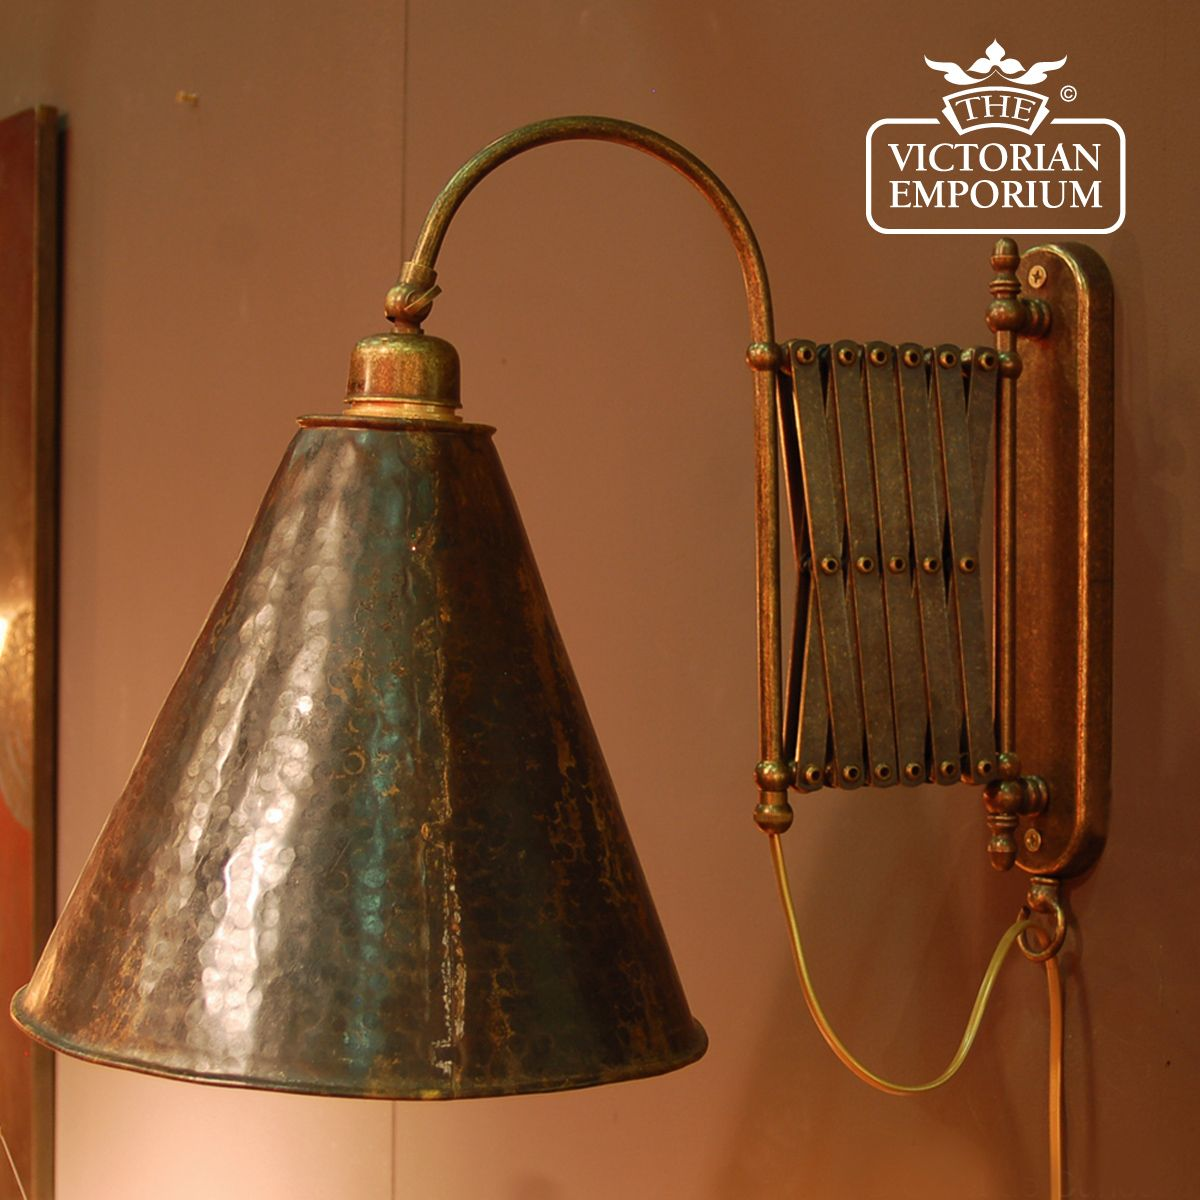 Extendable brass wall light interior wall lights for Victorian style interior wall lights